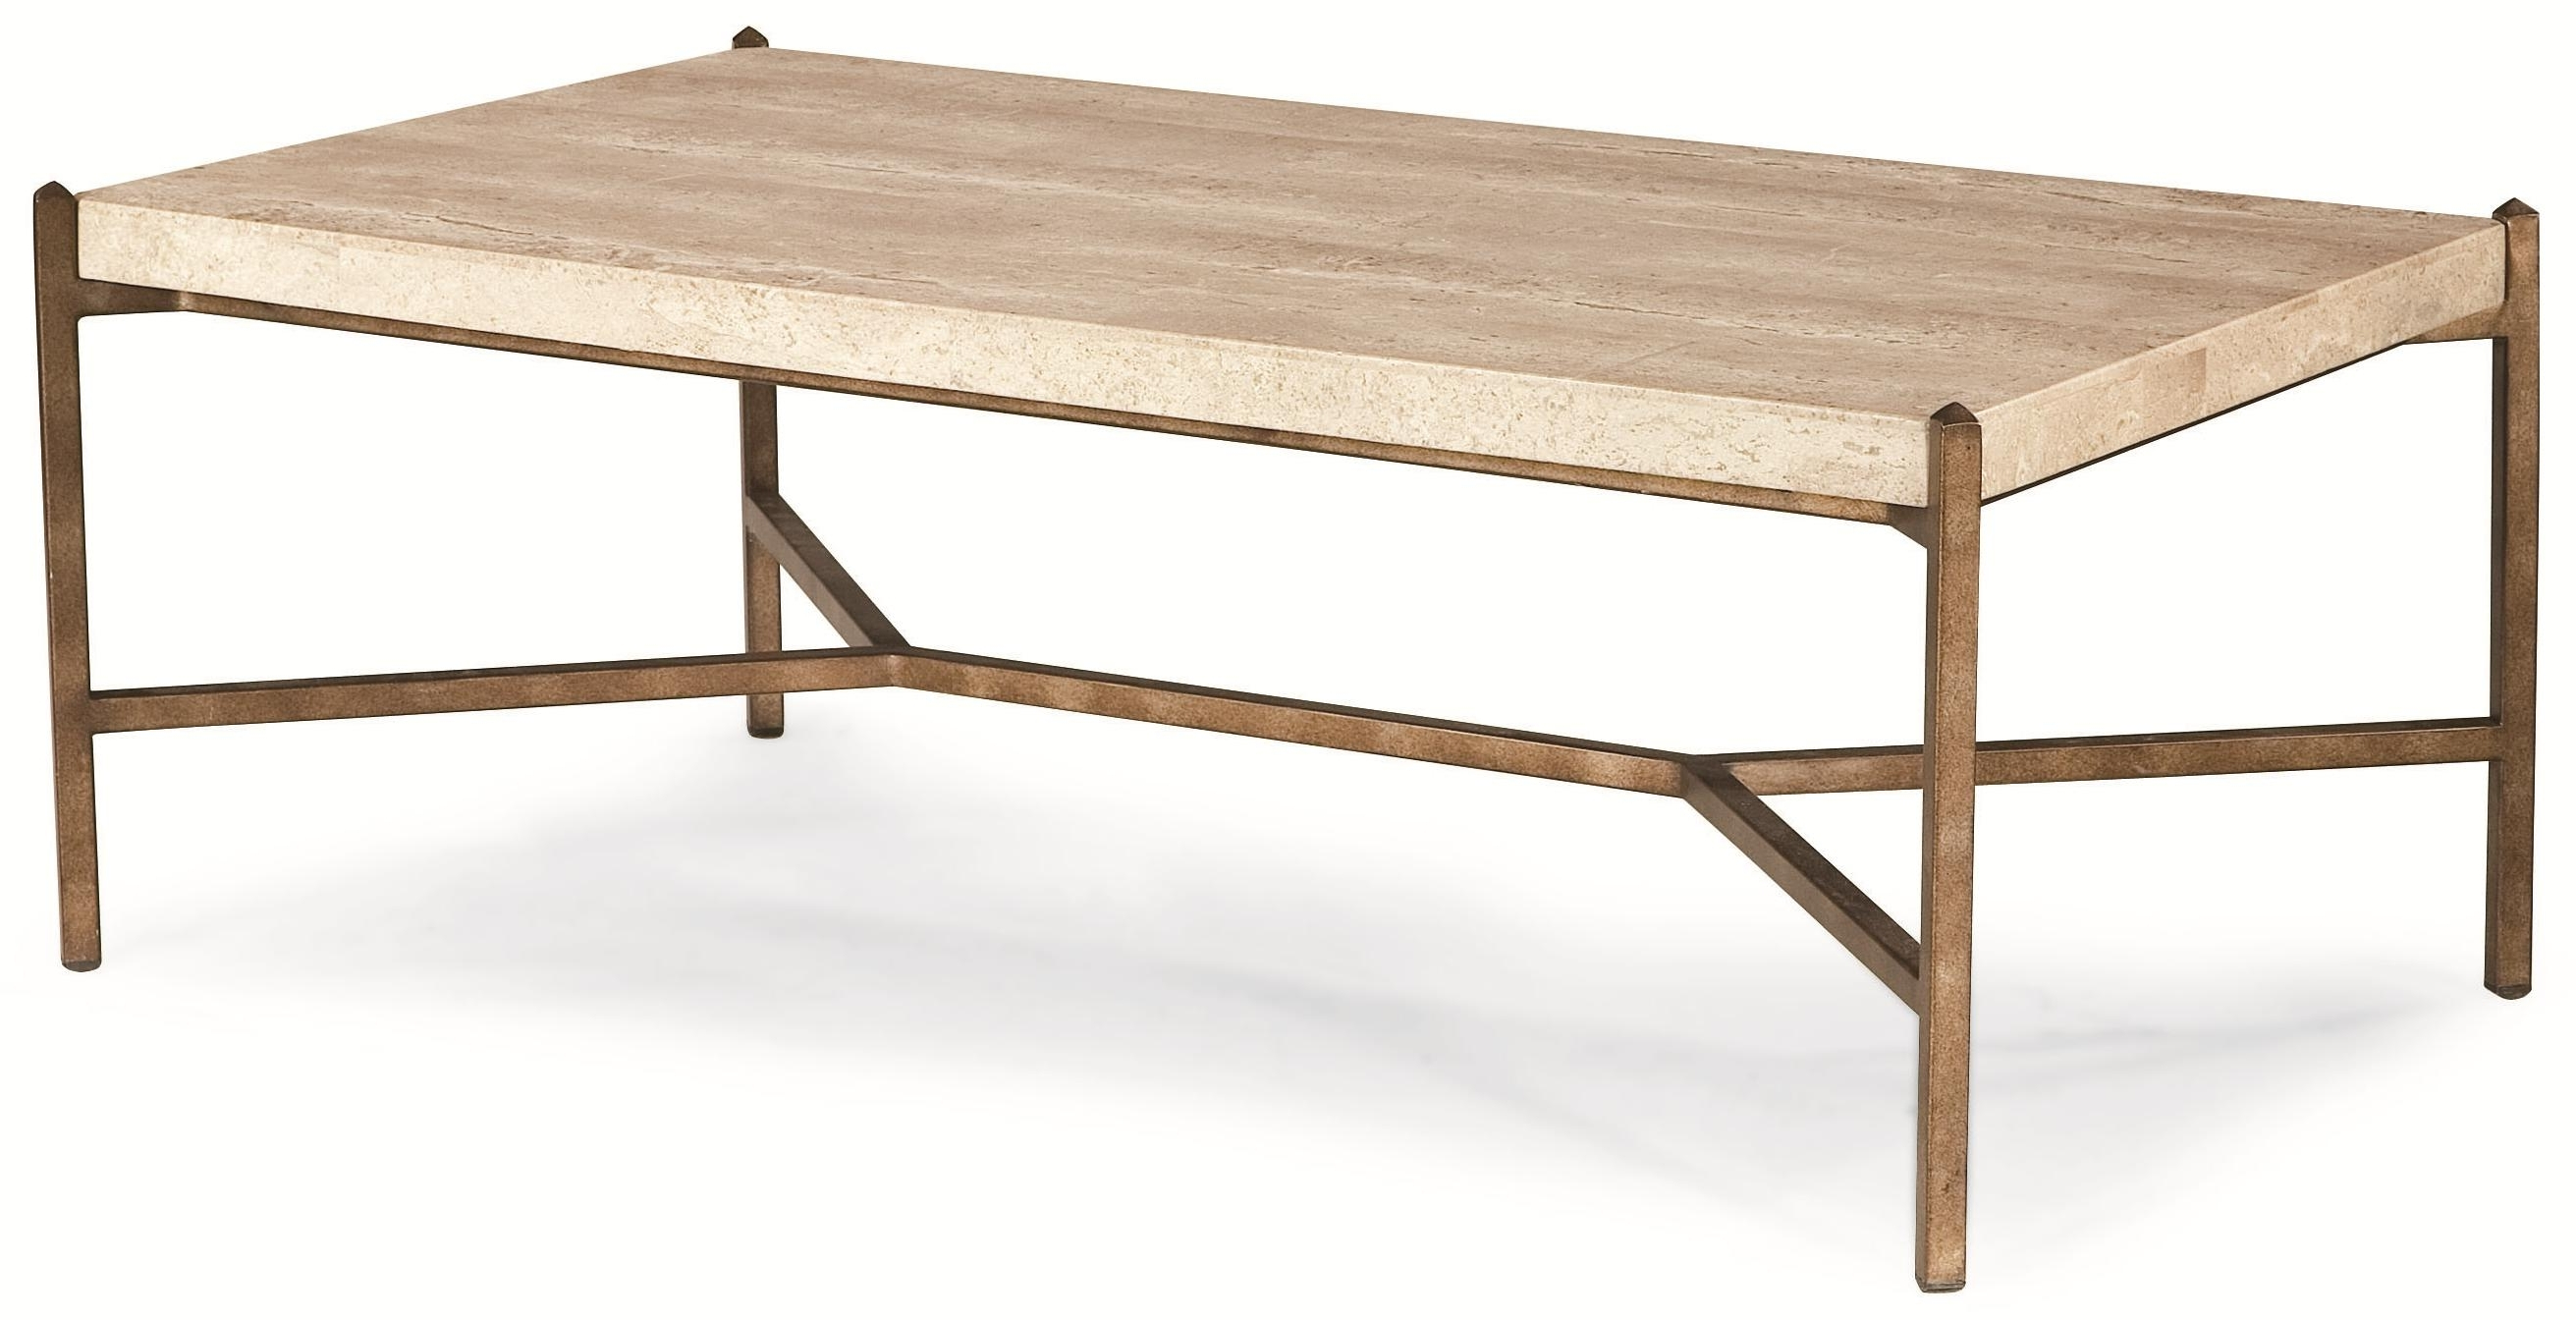 Latest Stone Top Coffee Tables Throughout Thomasville® Cachet 82191 121 Rectangular Coffee Table W/ Travertine (View 2 of 20)